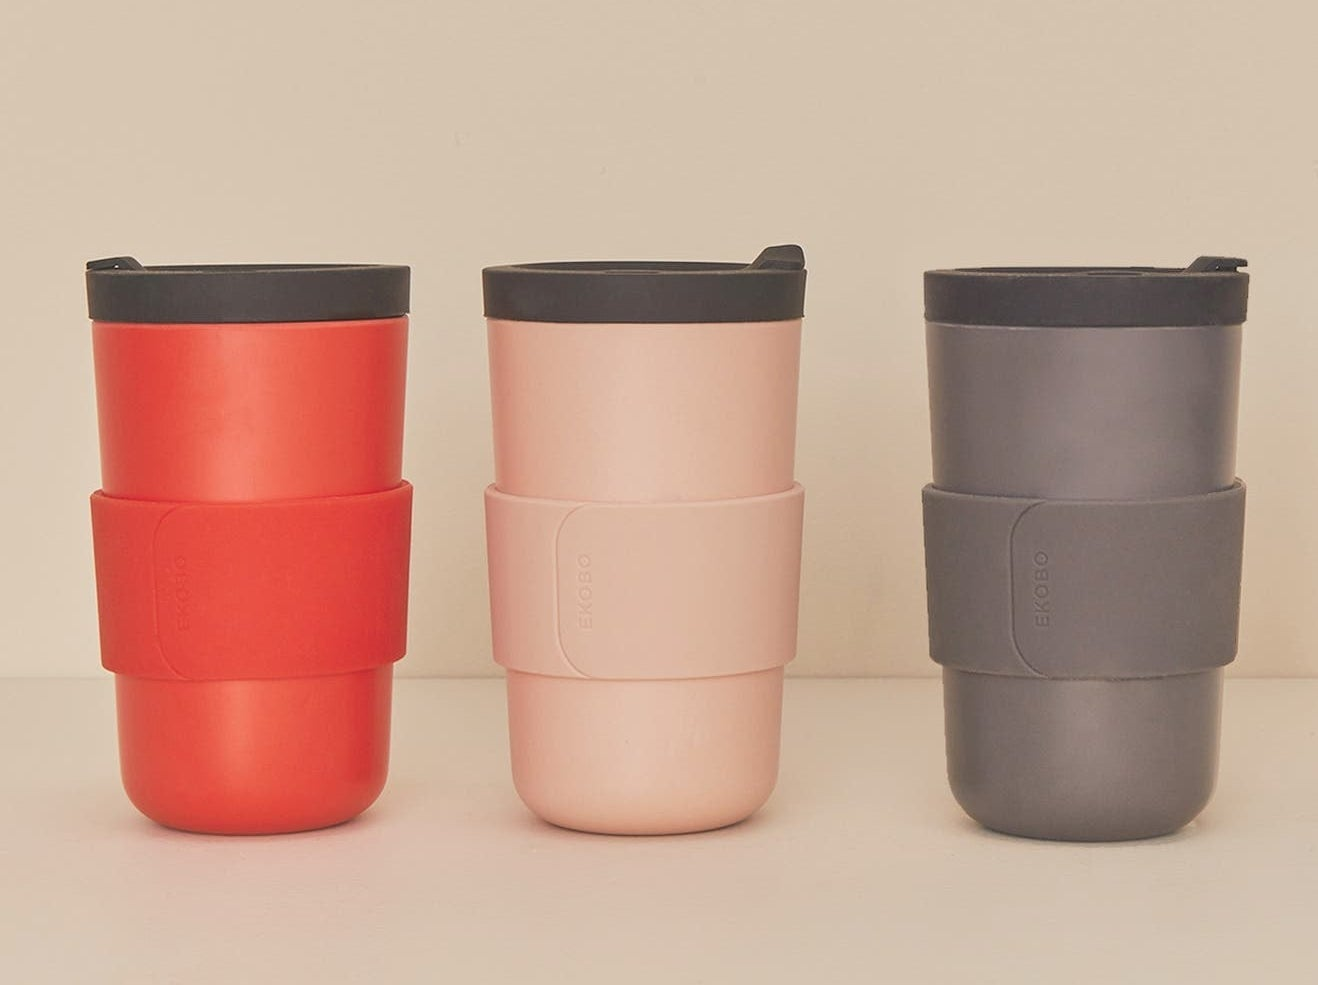 The red, light pink, and grey mugs with dark grey lids and matching colored sleeves